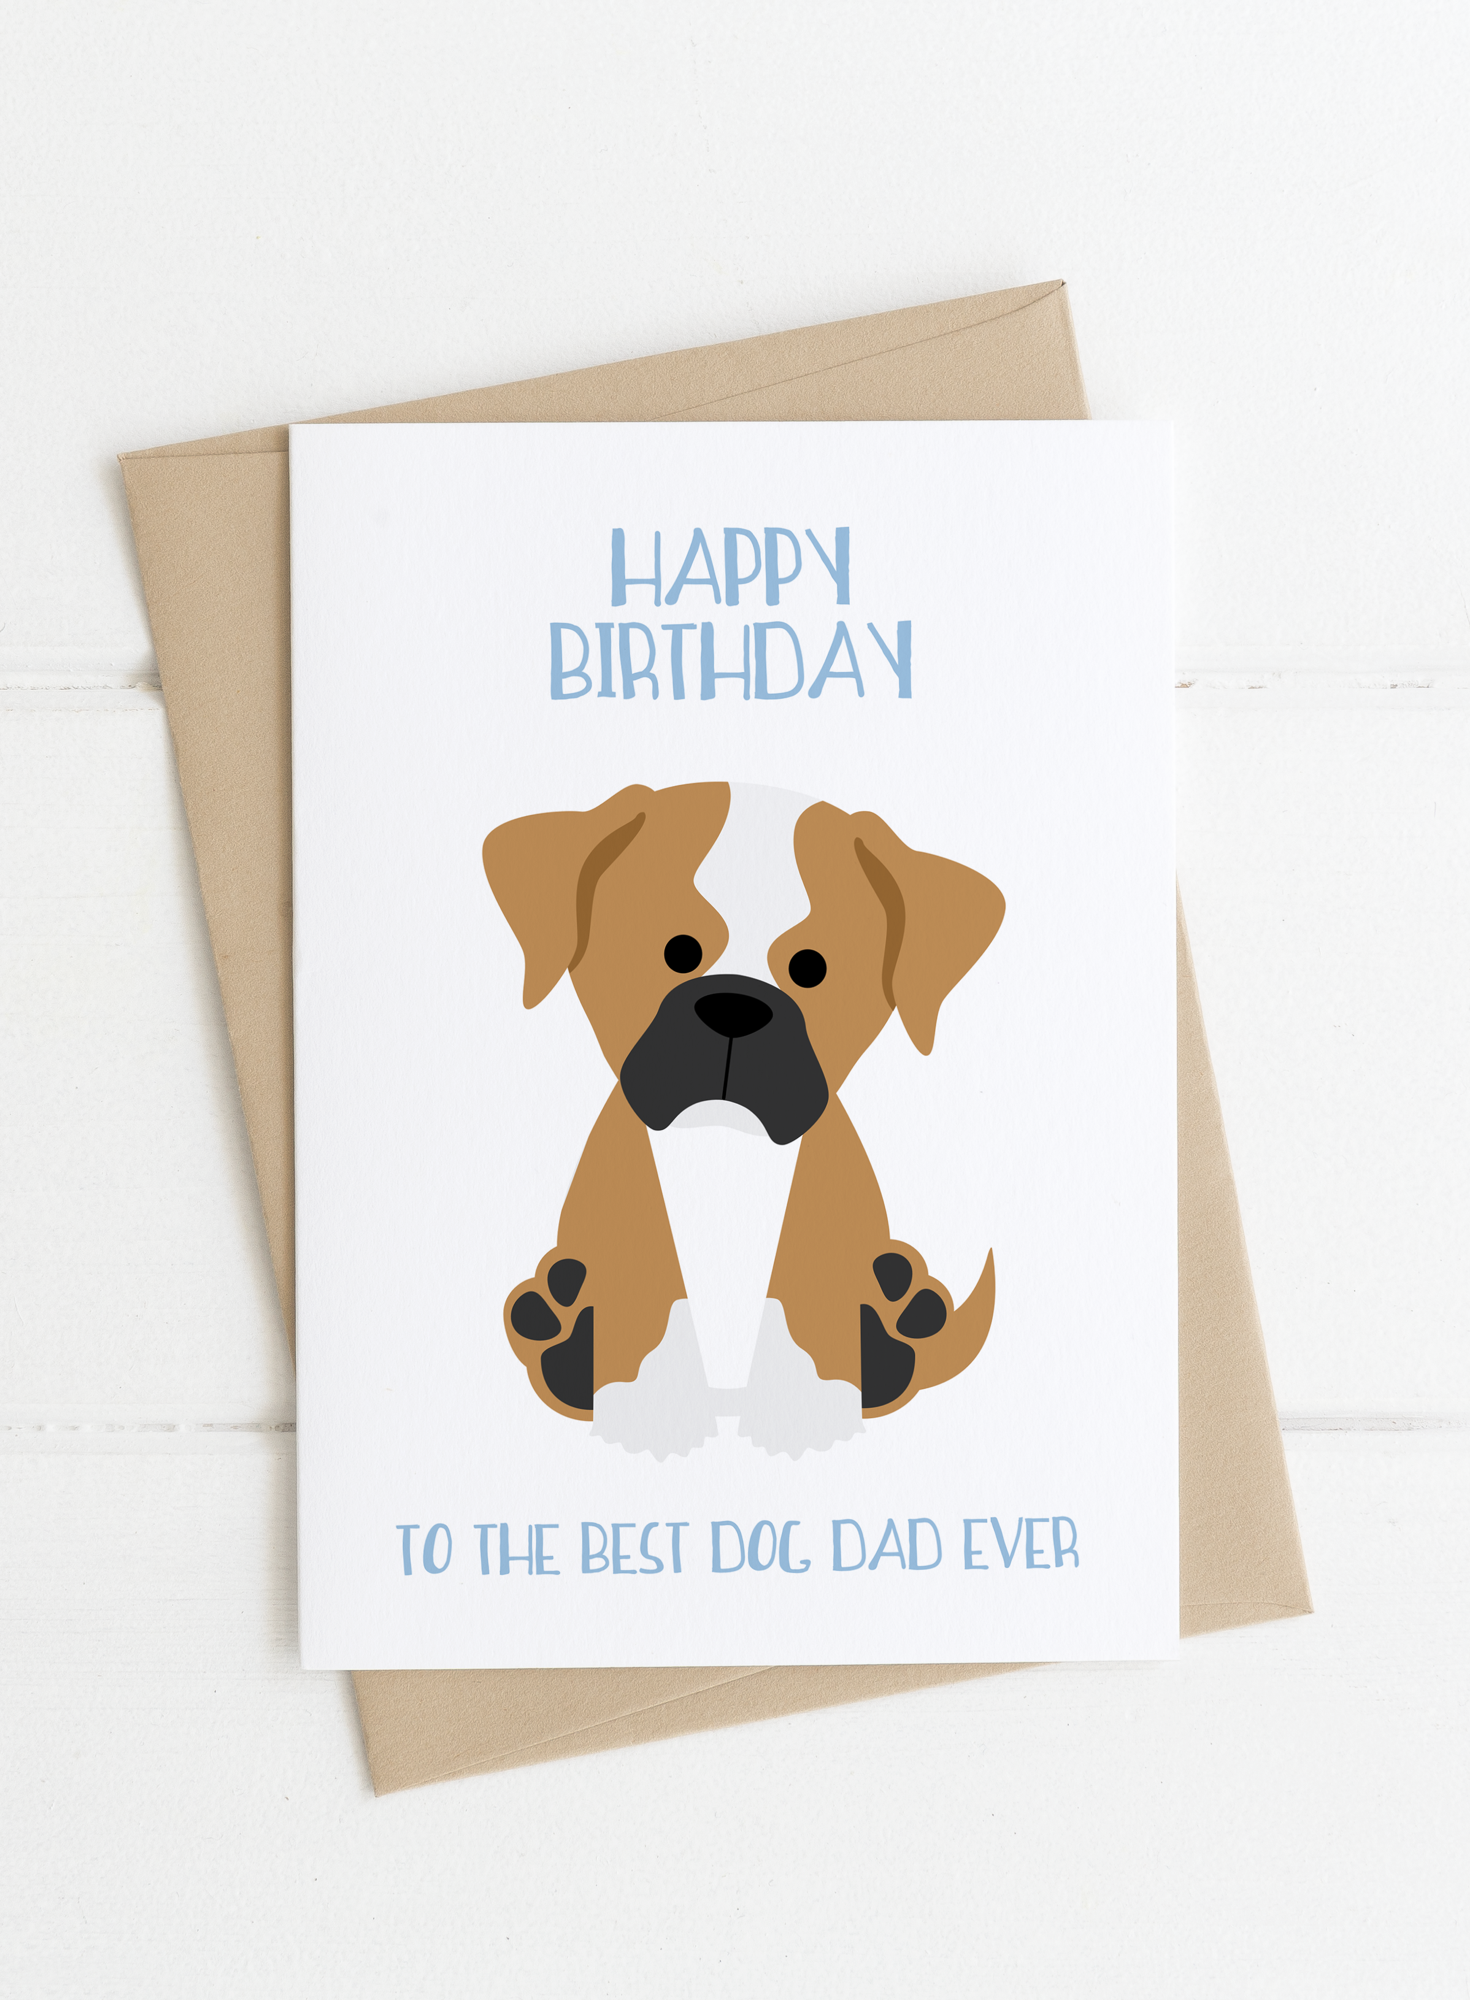 Dog Dad Birthday Card